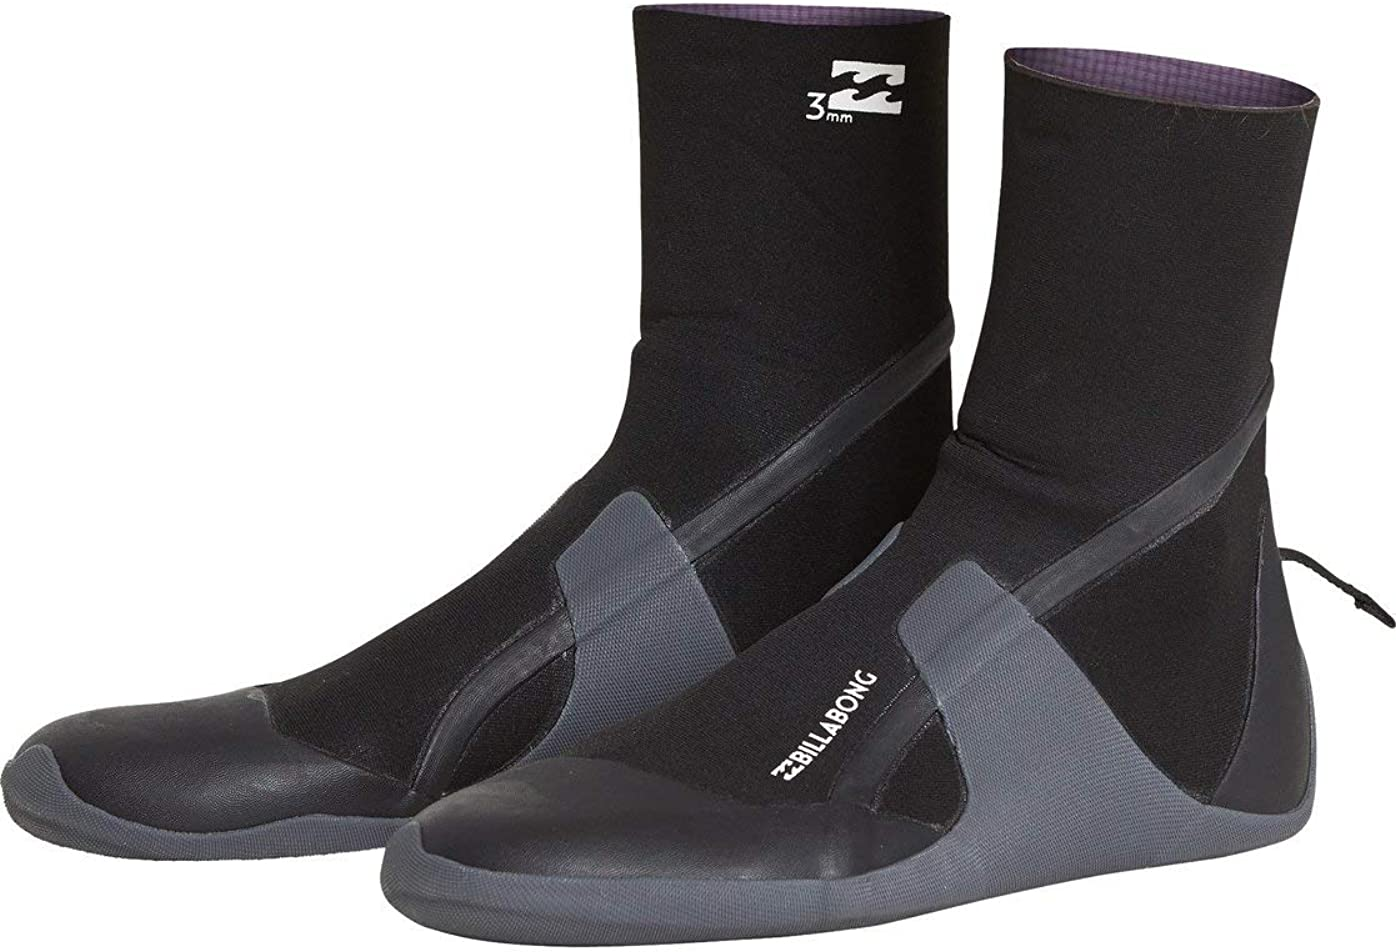 BILLABONG Absolute 5mm Round Toe Wetsuit Boot Boots Black Unisex Thermal Warm Heat Layer Layers Easy Stretch